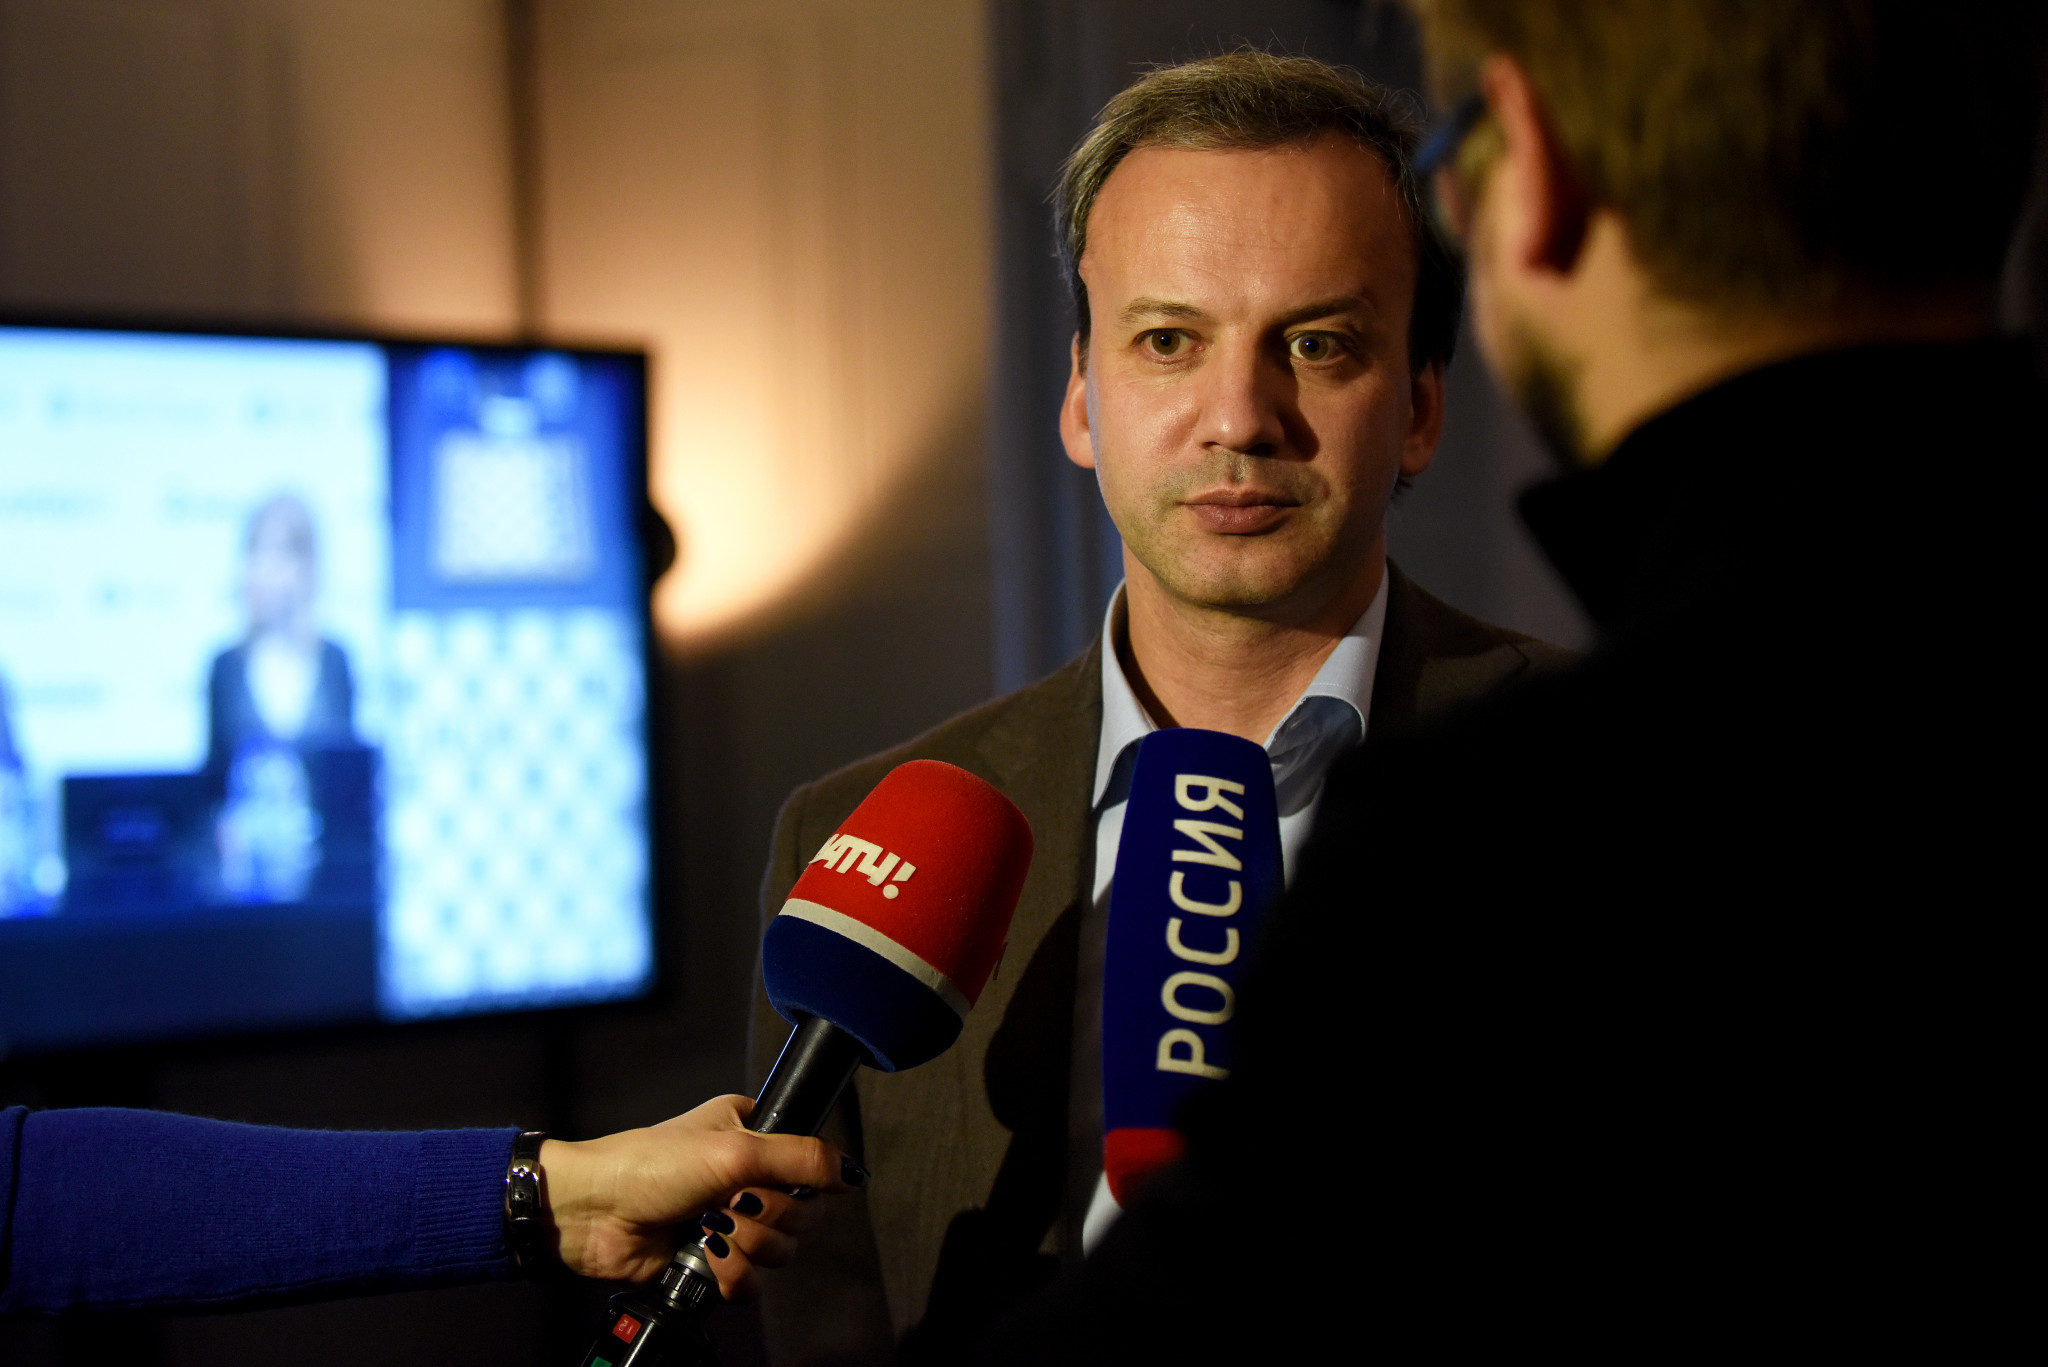 Another Russian, Arkady Dvorkovich, was elected as Kirsan Ilyumzhinov's formal replacement as FIDE President in October following a protracted dispute ©Getty Images